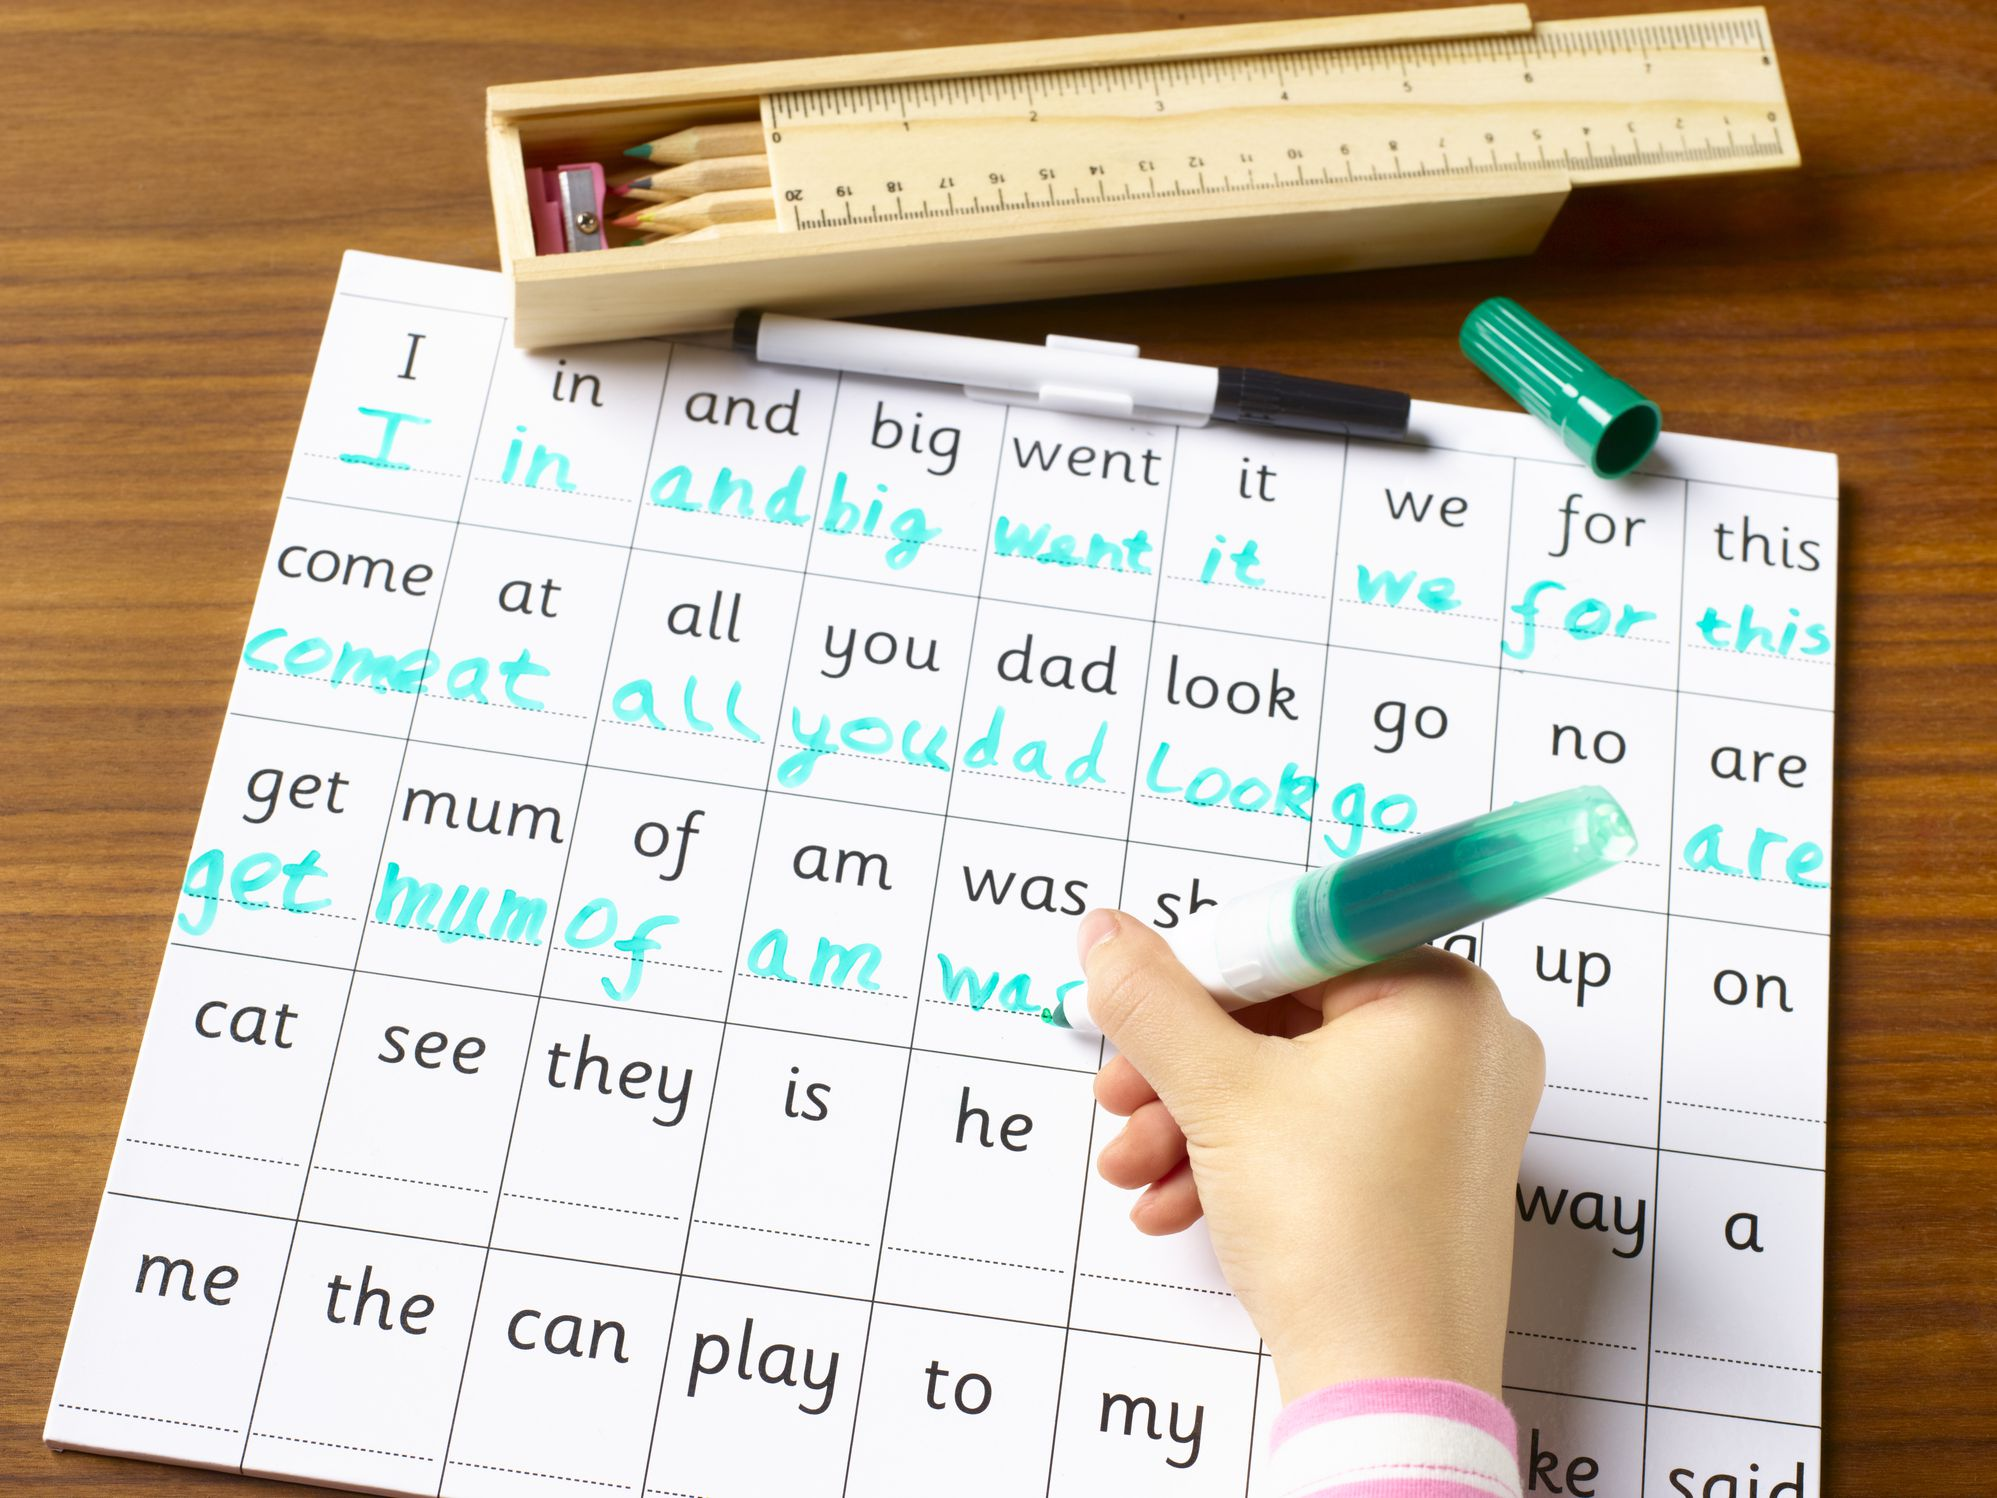 Best Ways To Practice And Learn Spelling Test Up